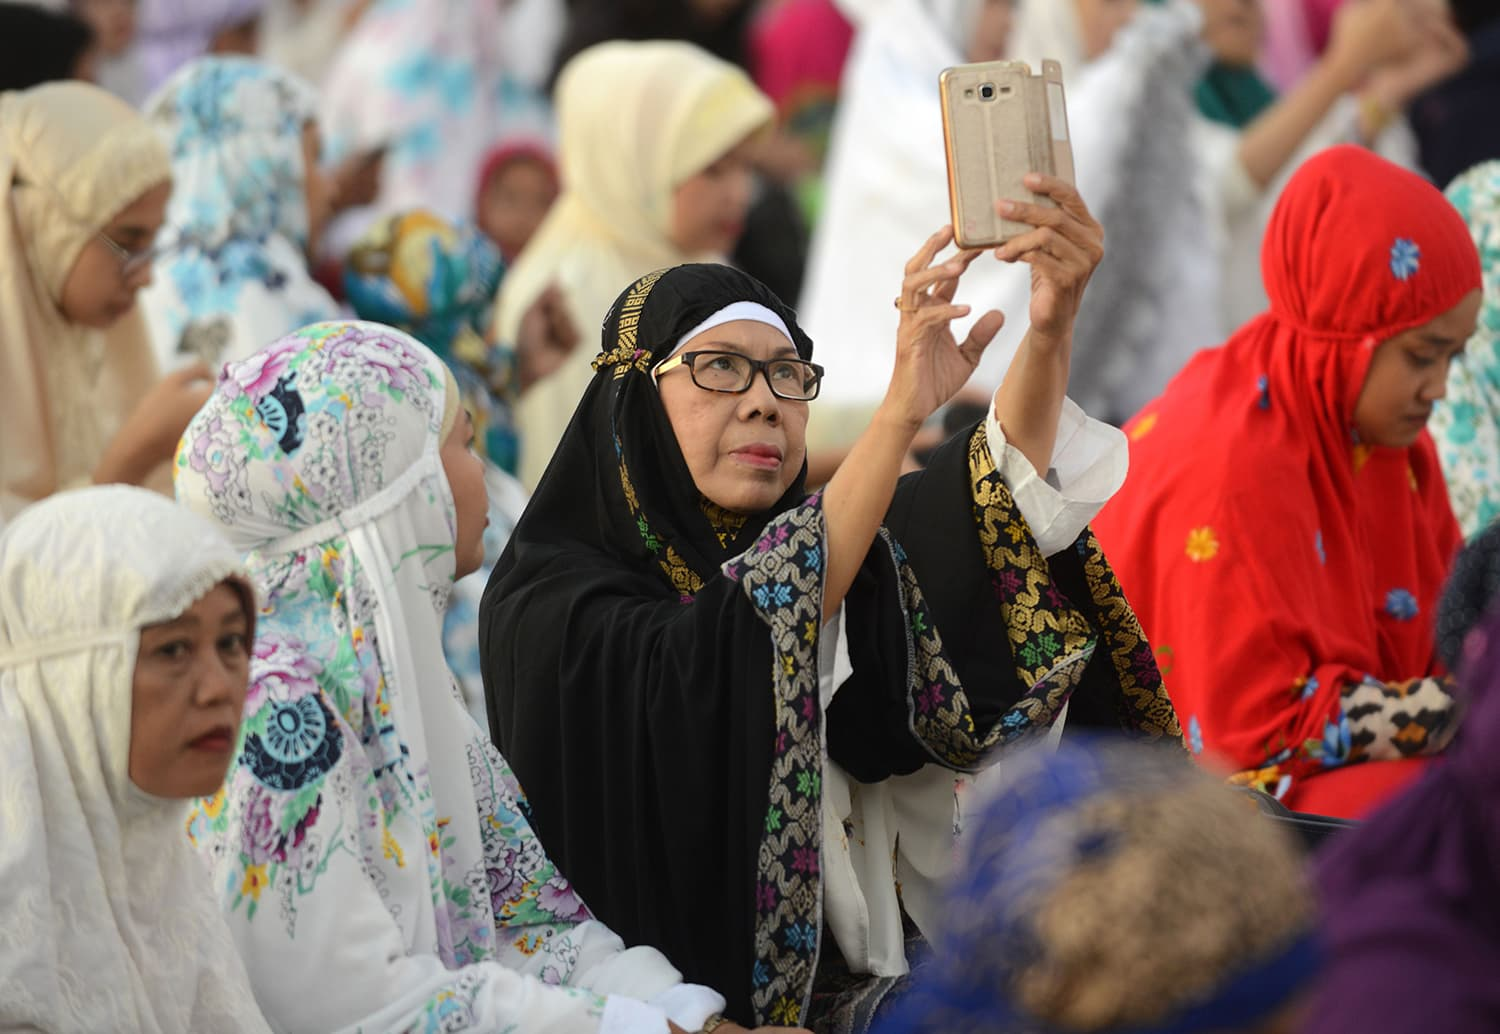 Indonesian Muslim women take part in a special morning prayer celebrating Eidul Fitr festival at Bali's Bajra Sandhi monument and park in Denpasar. — AFP